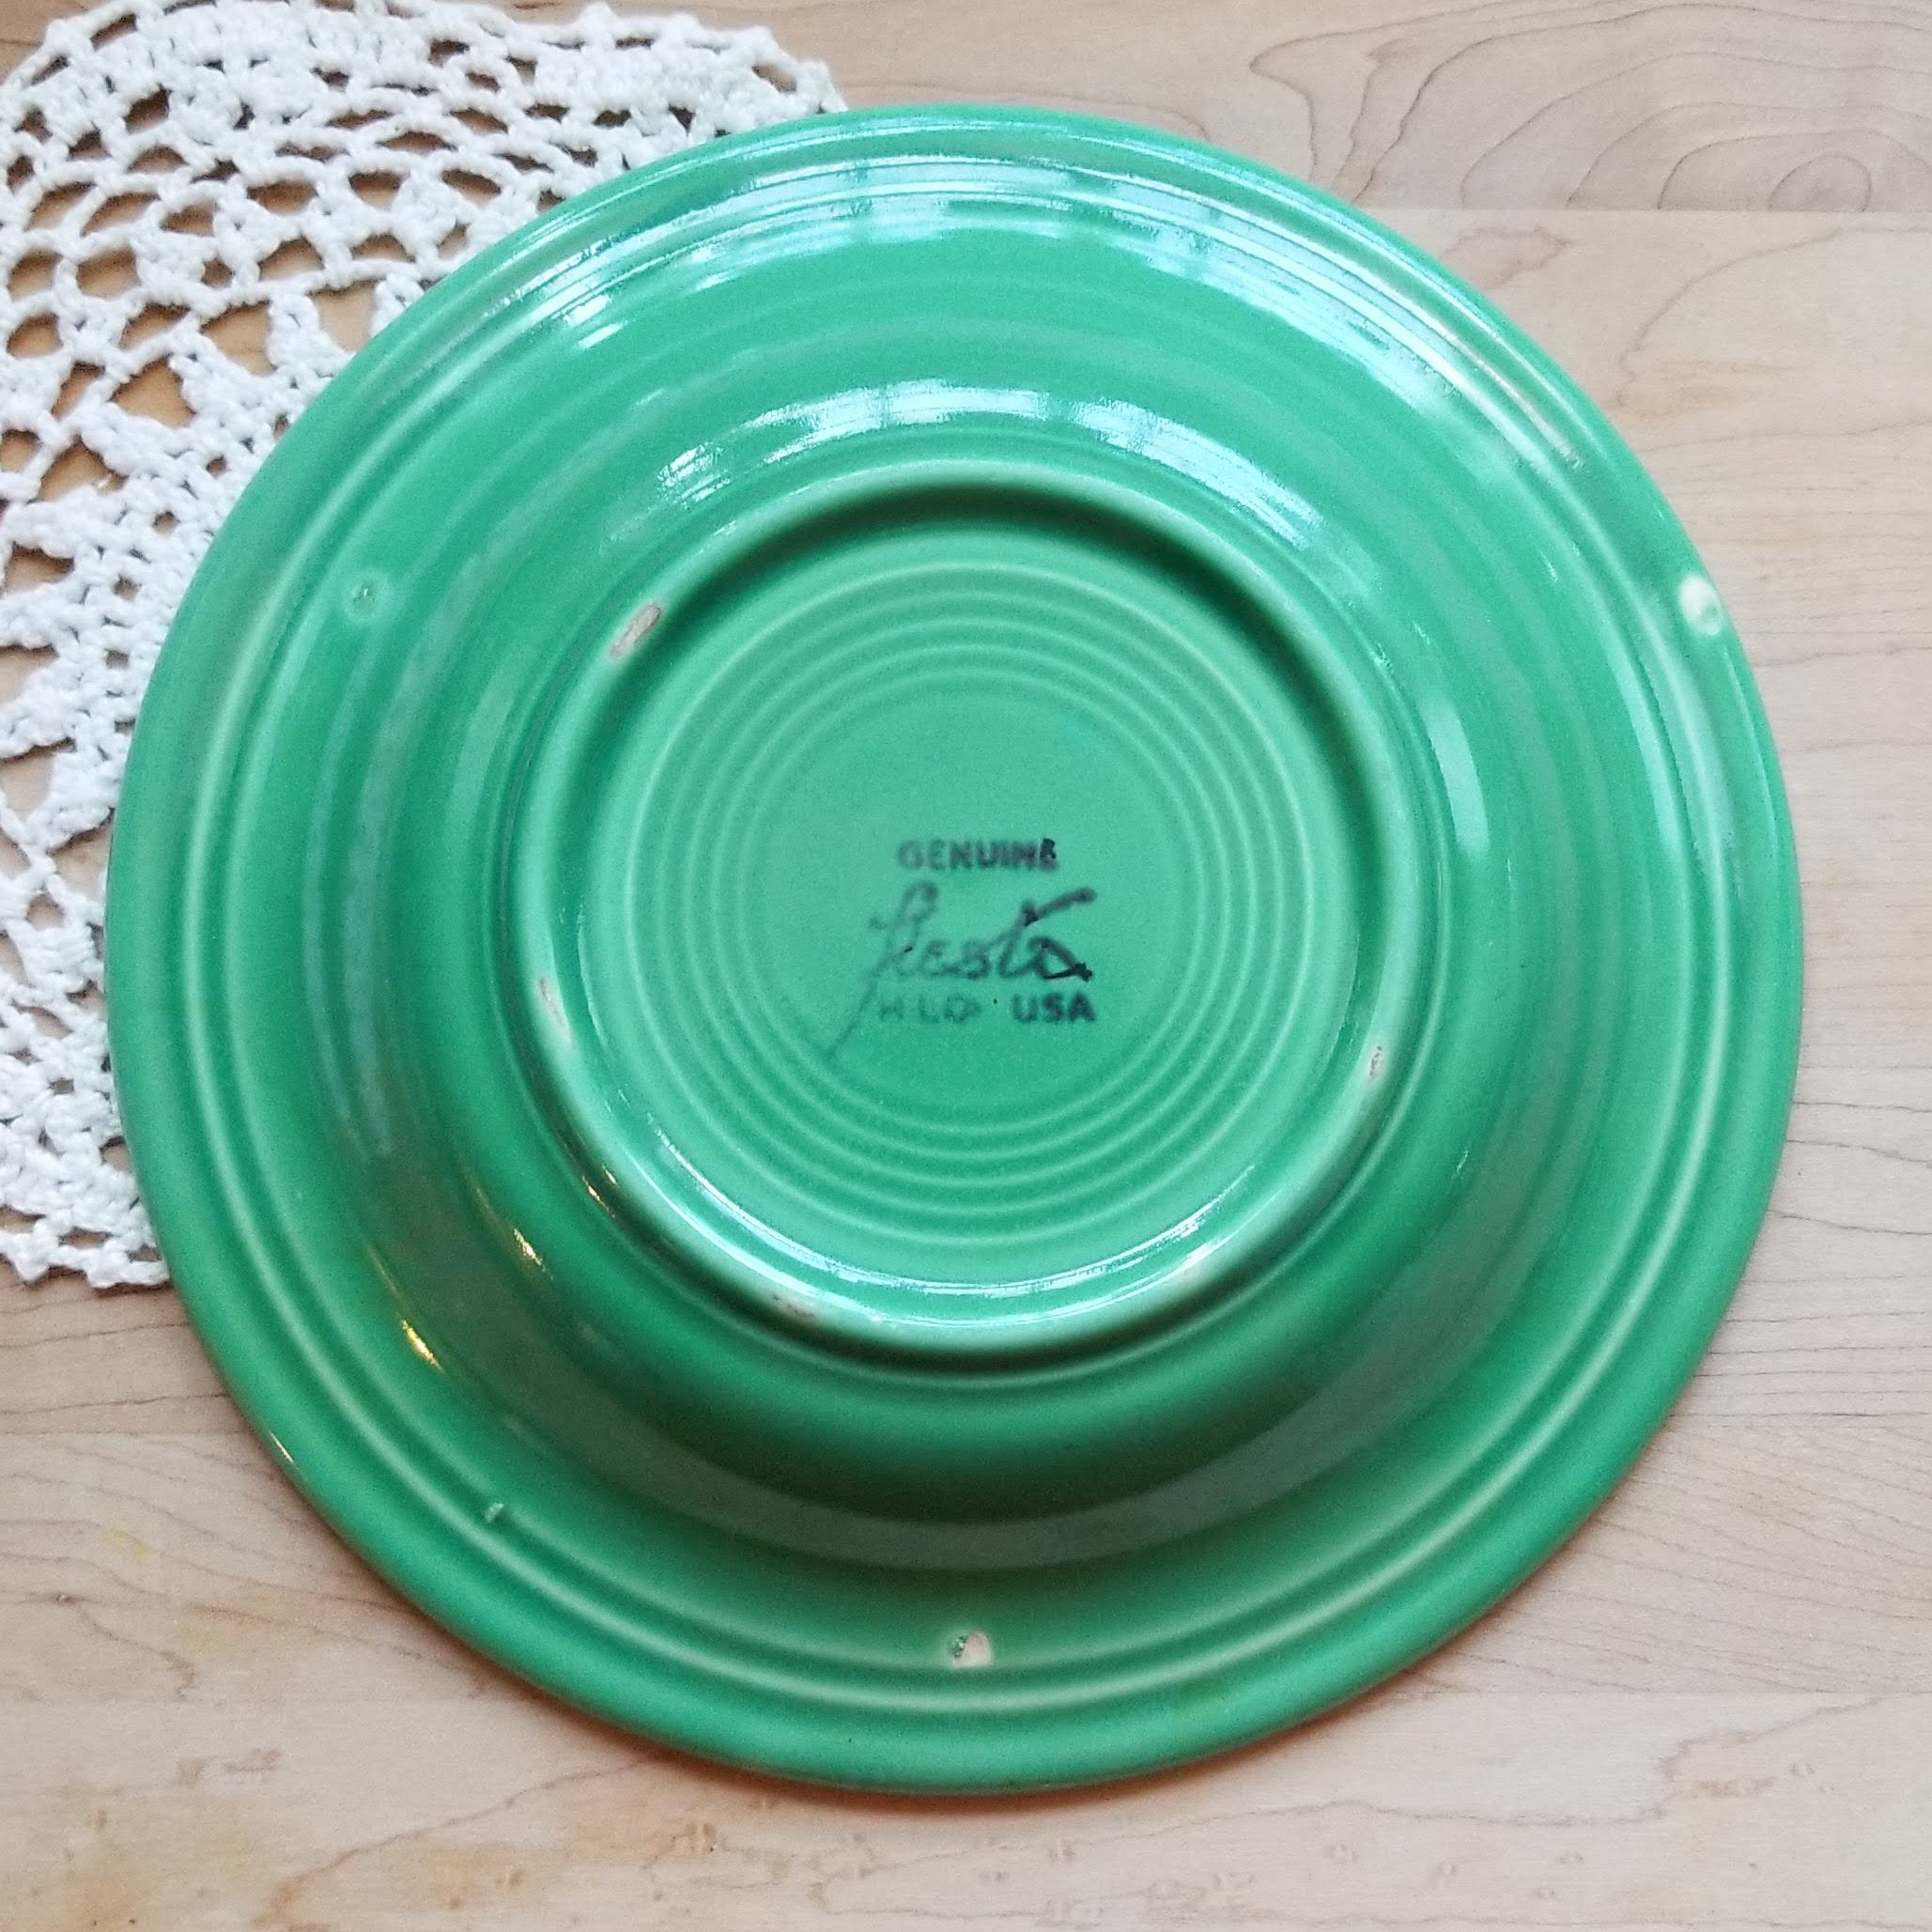 ONE Discontinued Original Rim Soup Bowl in Fiesta Light Green (Older) by HOMER LAUGHLIN